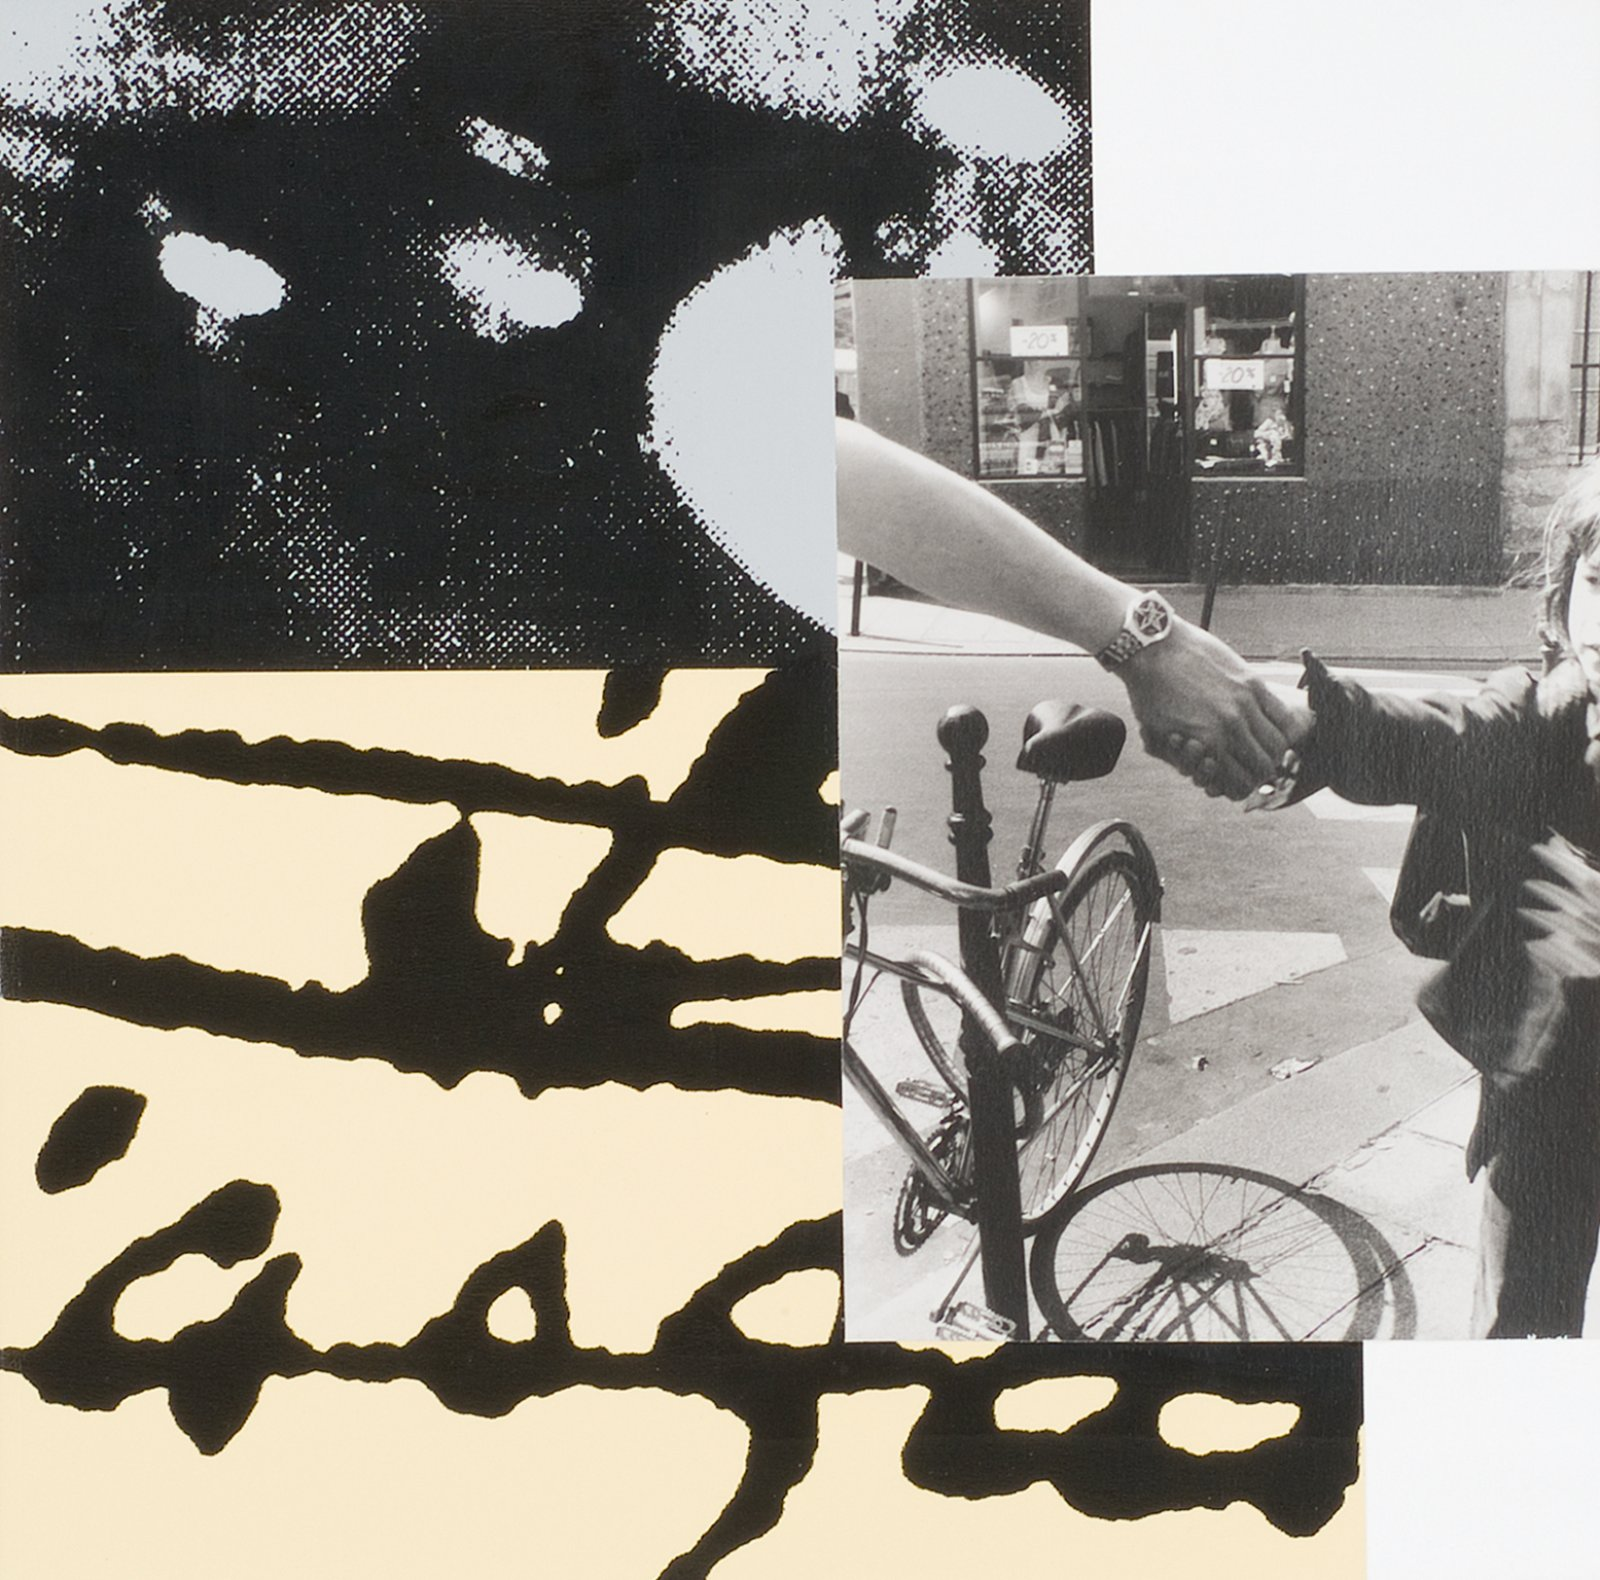 Ian Wallace, Tropismes V, 1995, photolaminate with ink serigraph and acrylic on canvas, 24 x 24 in. (61 x 61 cm). Installation view, A Literature of Images, Kunsthalle Zürich, 2008 by Ian Wallace